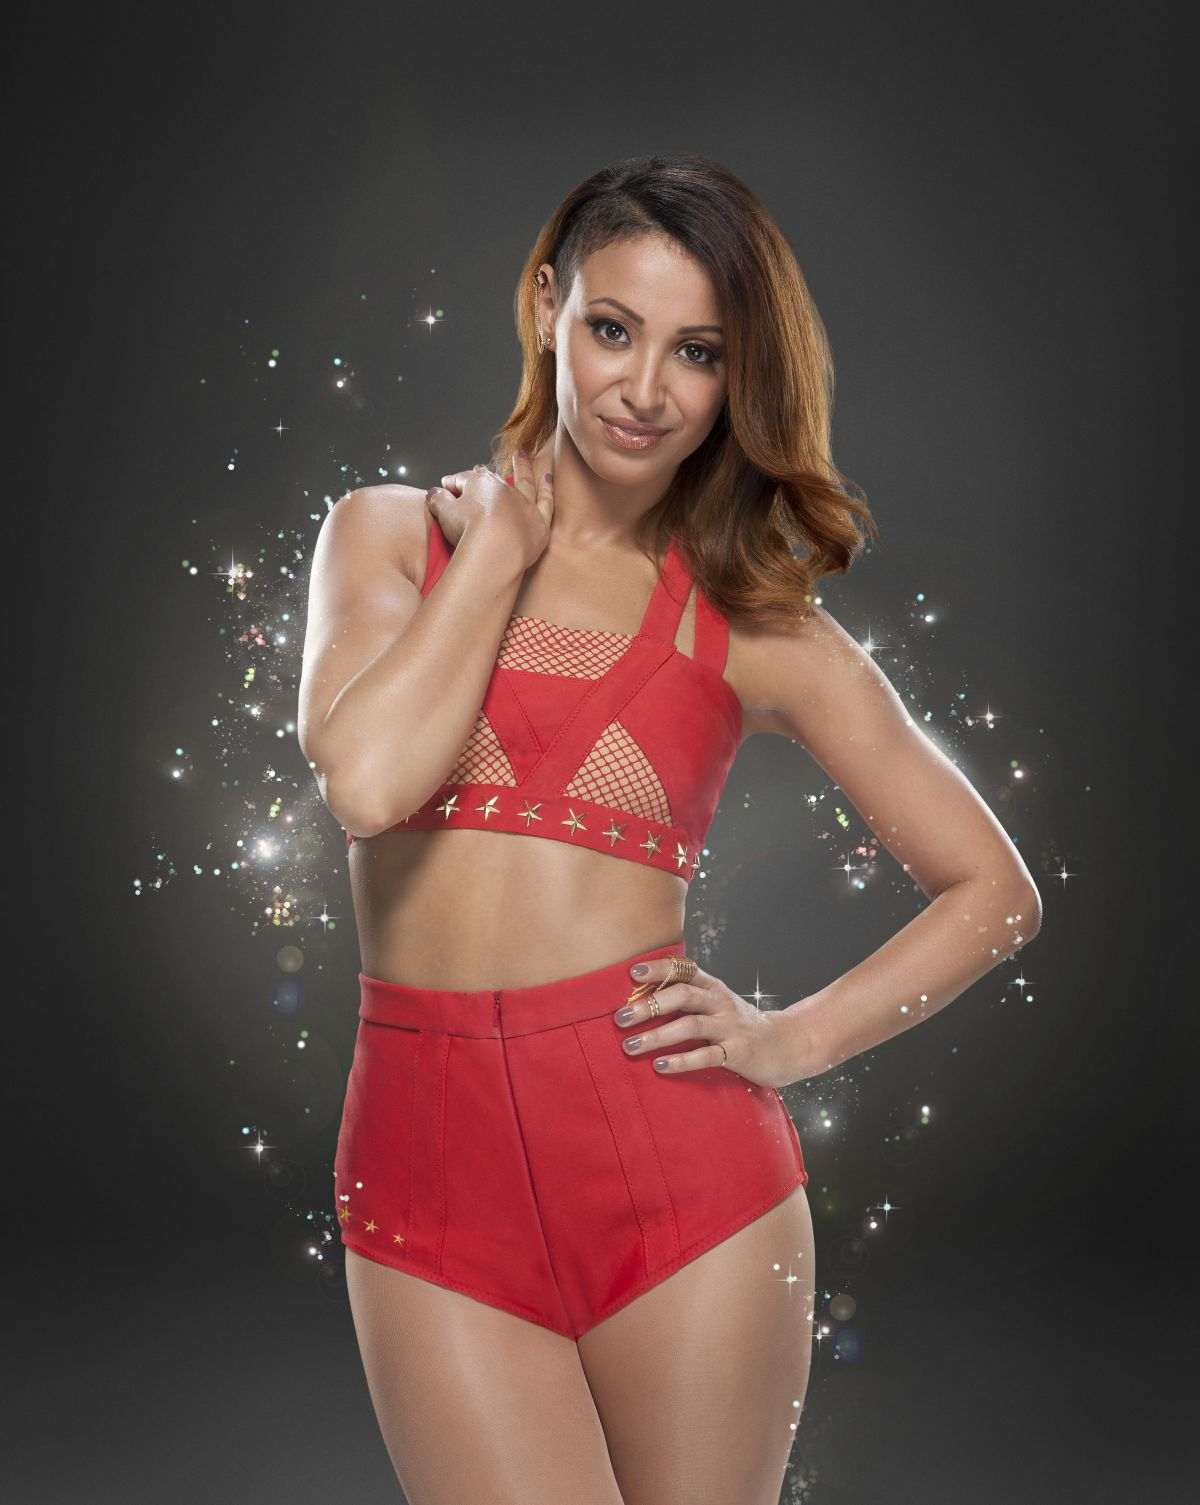 AMELLE BERRABAH - Colin Bell Photoshoot